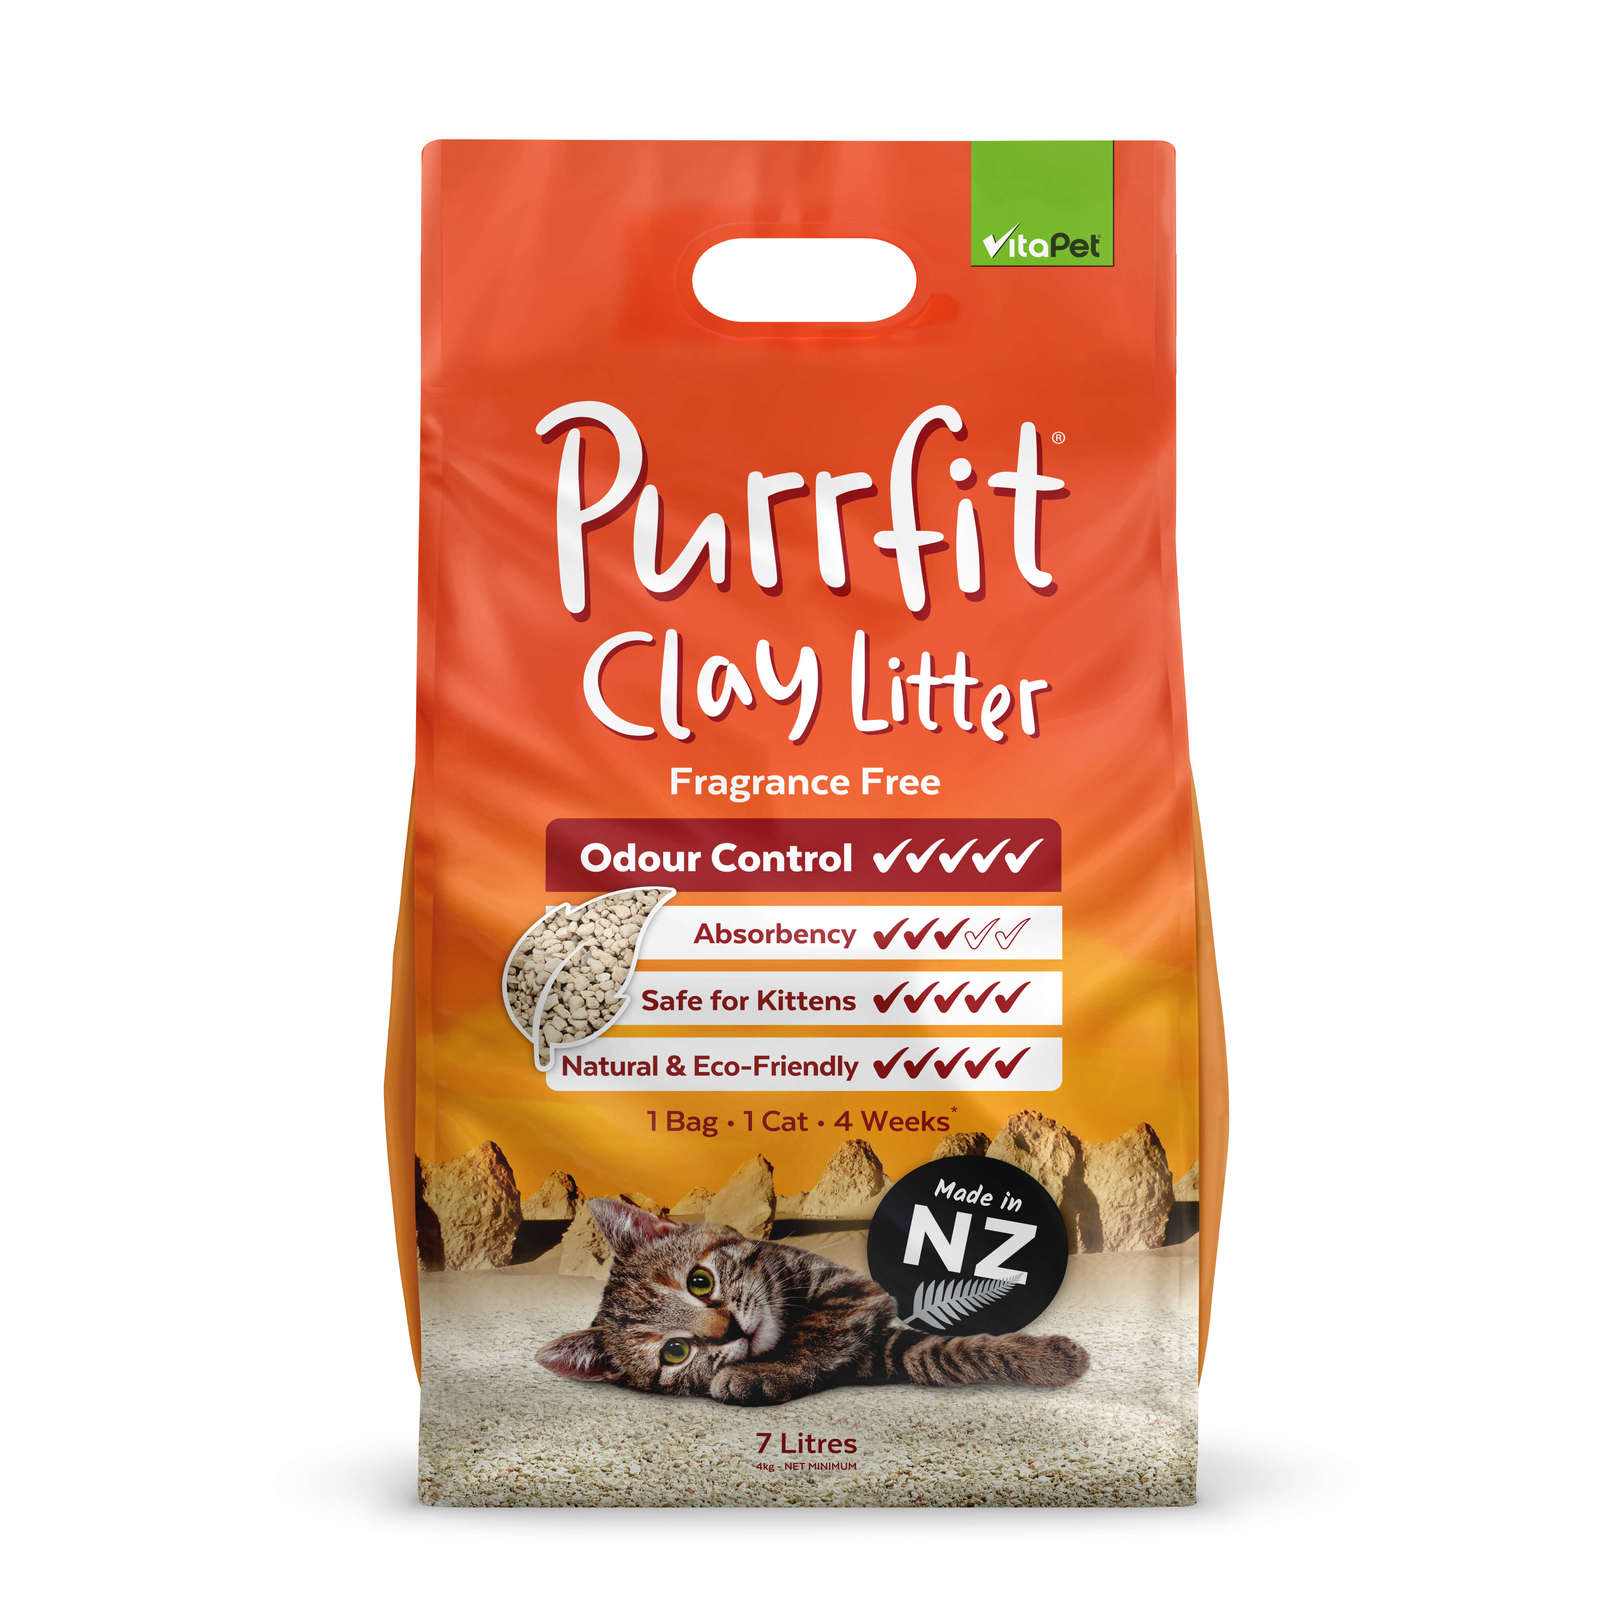 Vitapet: Purrfit Clay Litter (7L) image